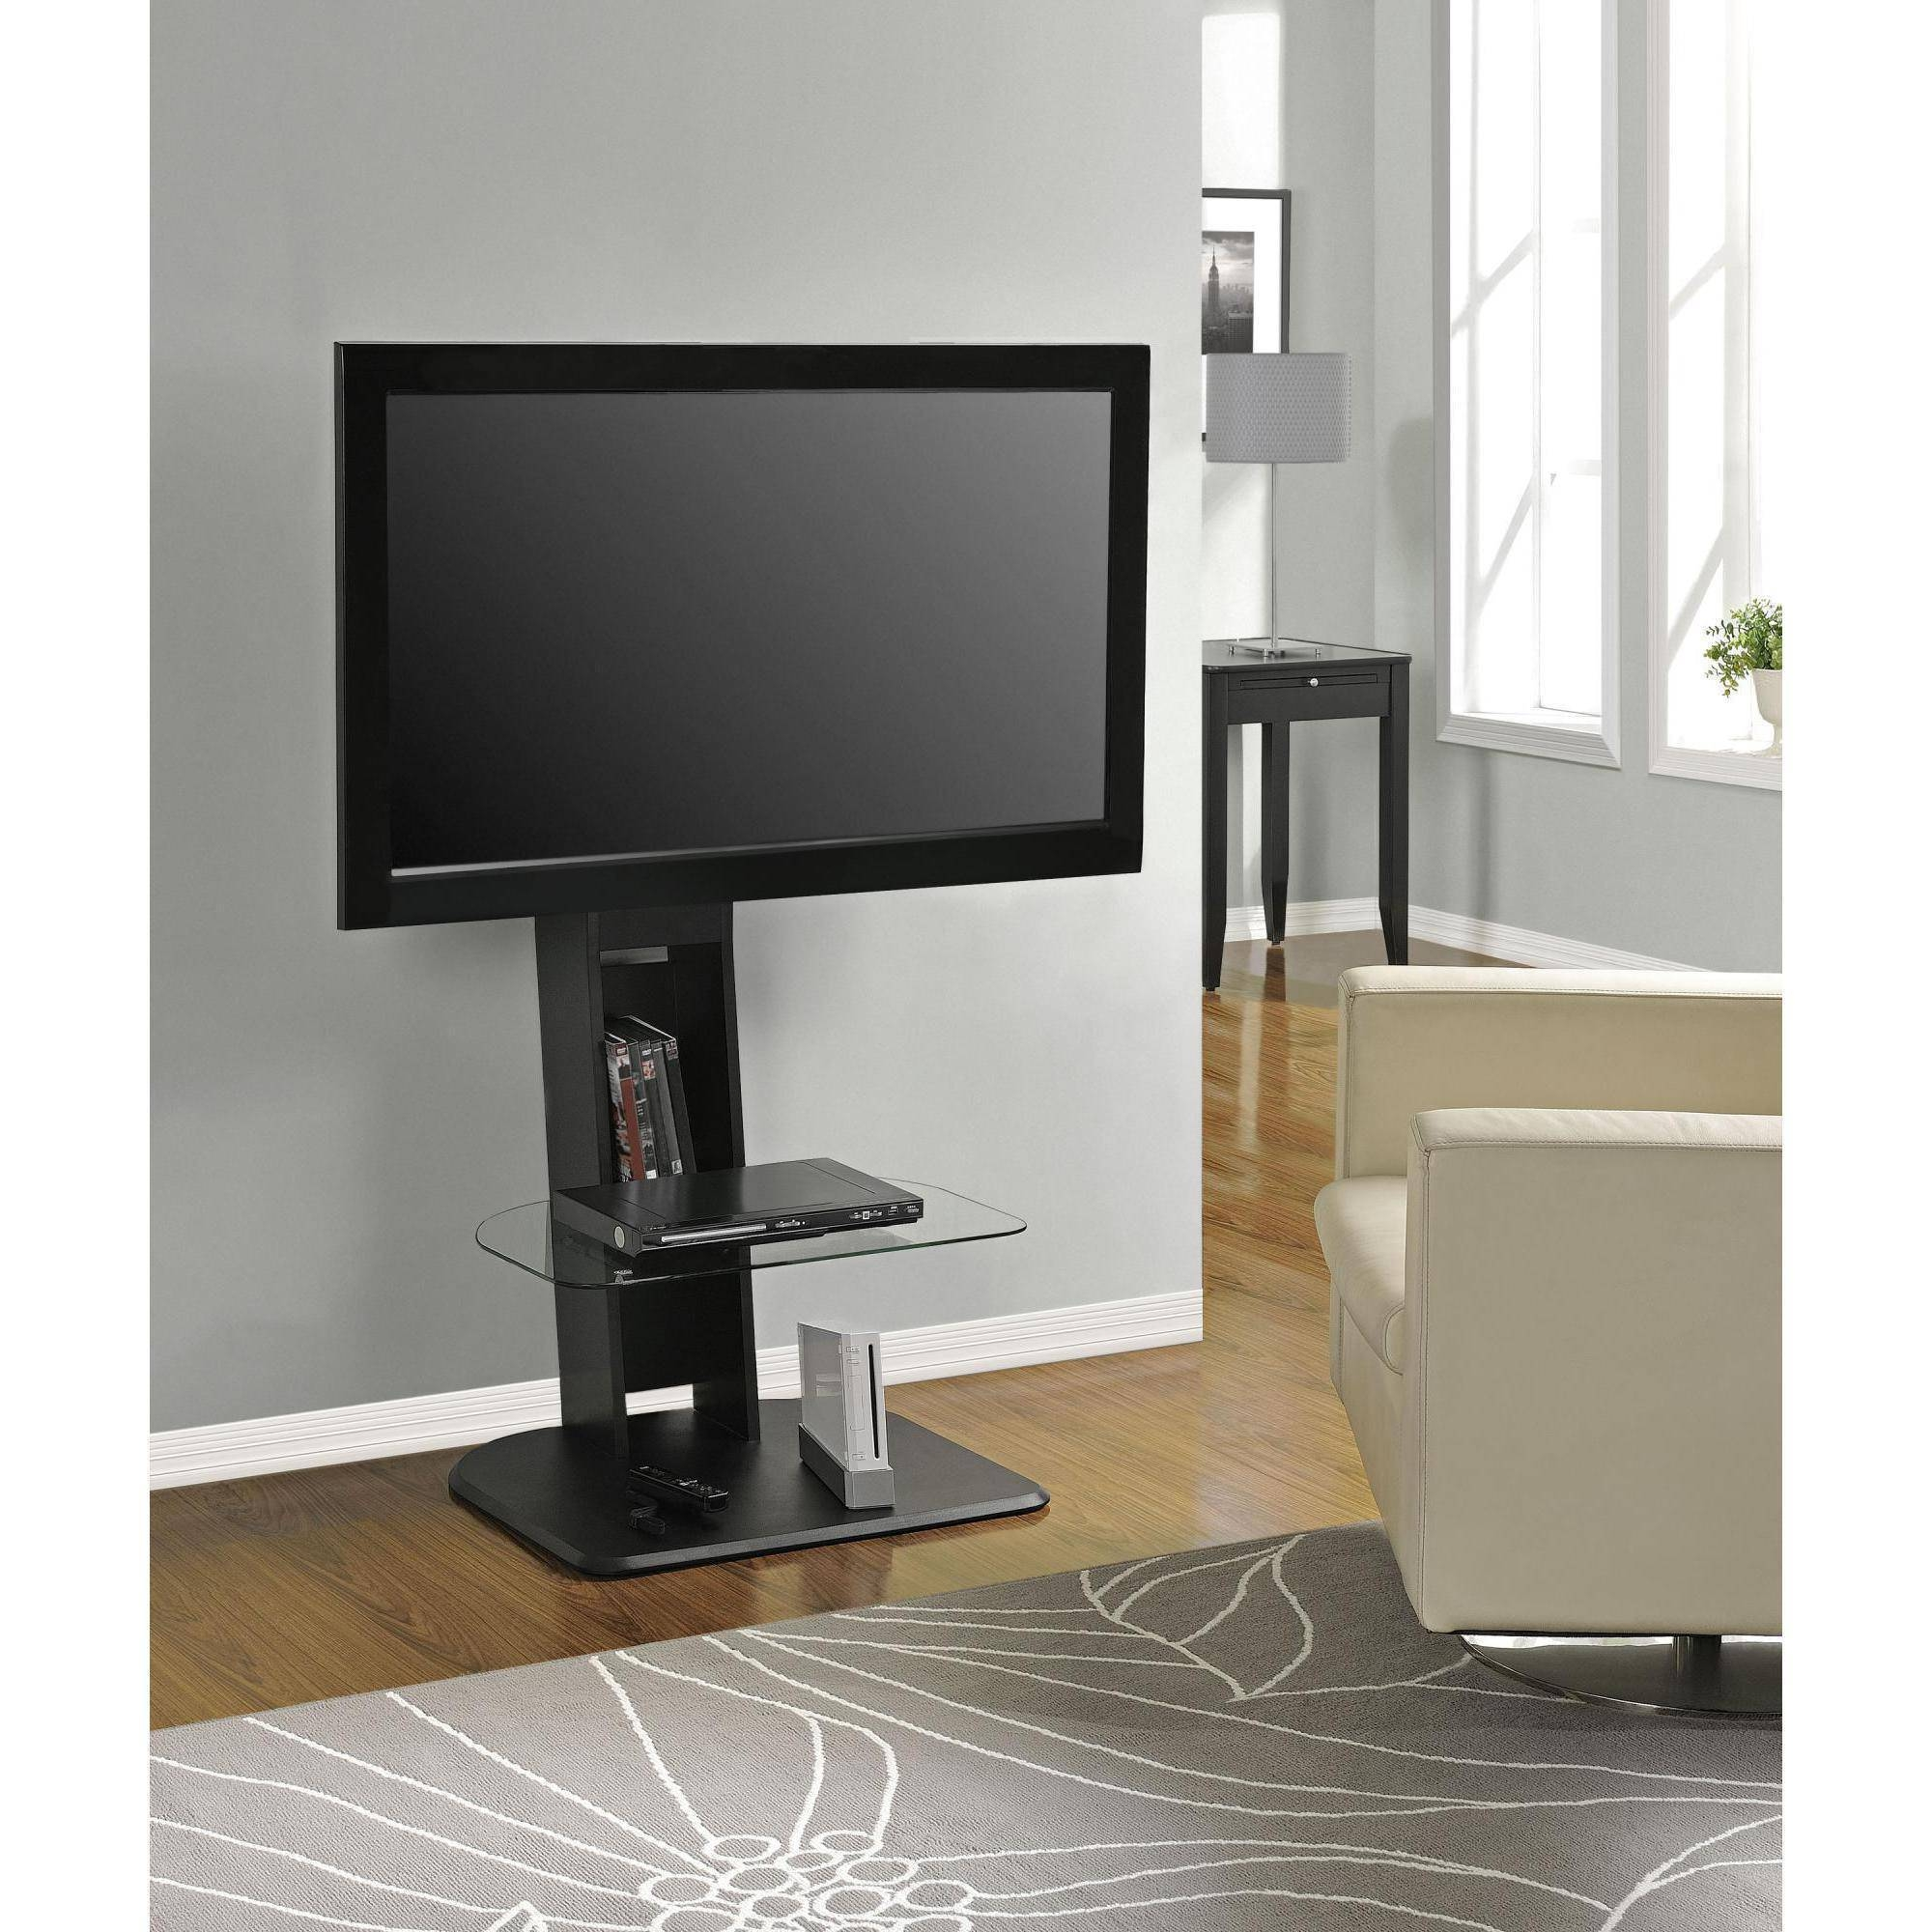 Tv Stands & Entertainment Centers - Walmart throughout Tv Stands For Large Tvs (Image 12 of 15)